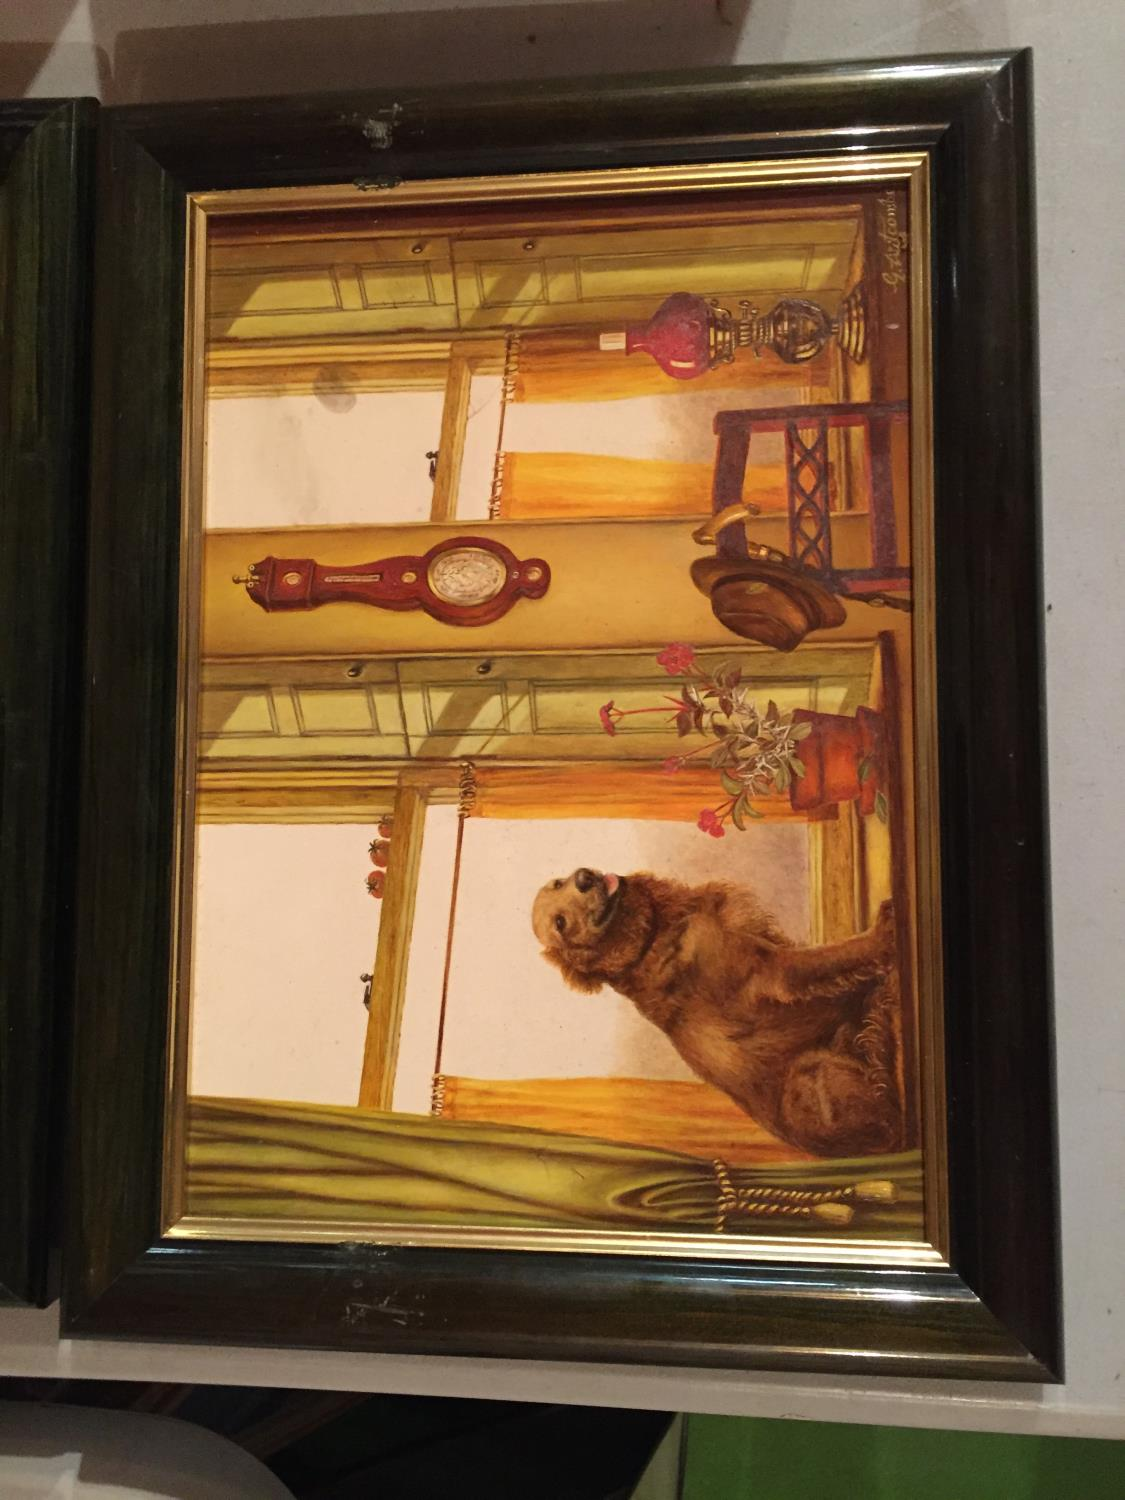 TWO FRAMED PAINTINGS OF A CAT IN A WINDOW AND A DOG IN A WINDOW - Image 3 of 6